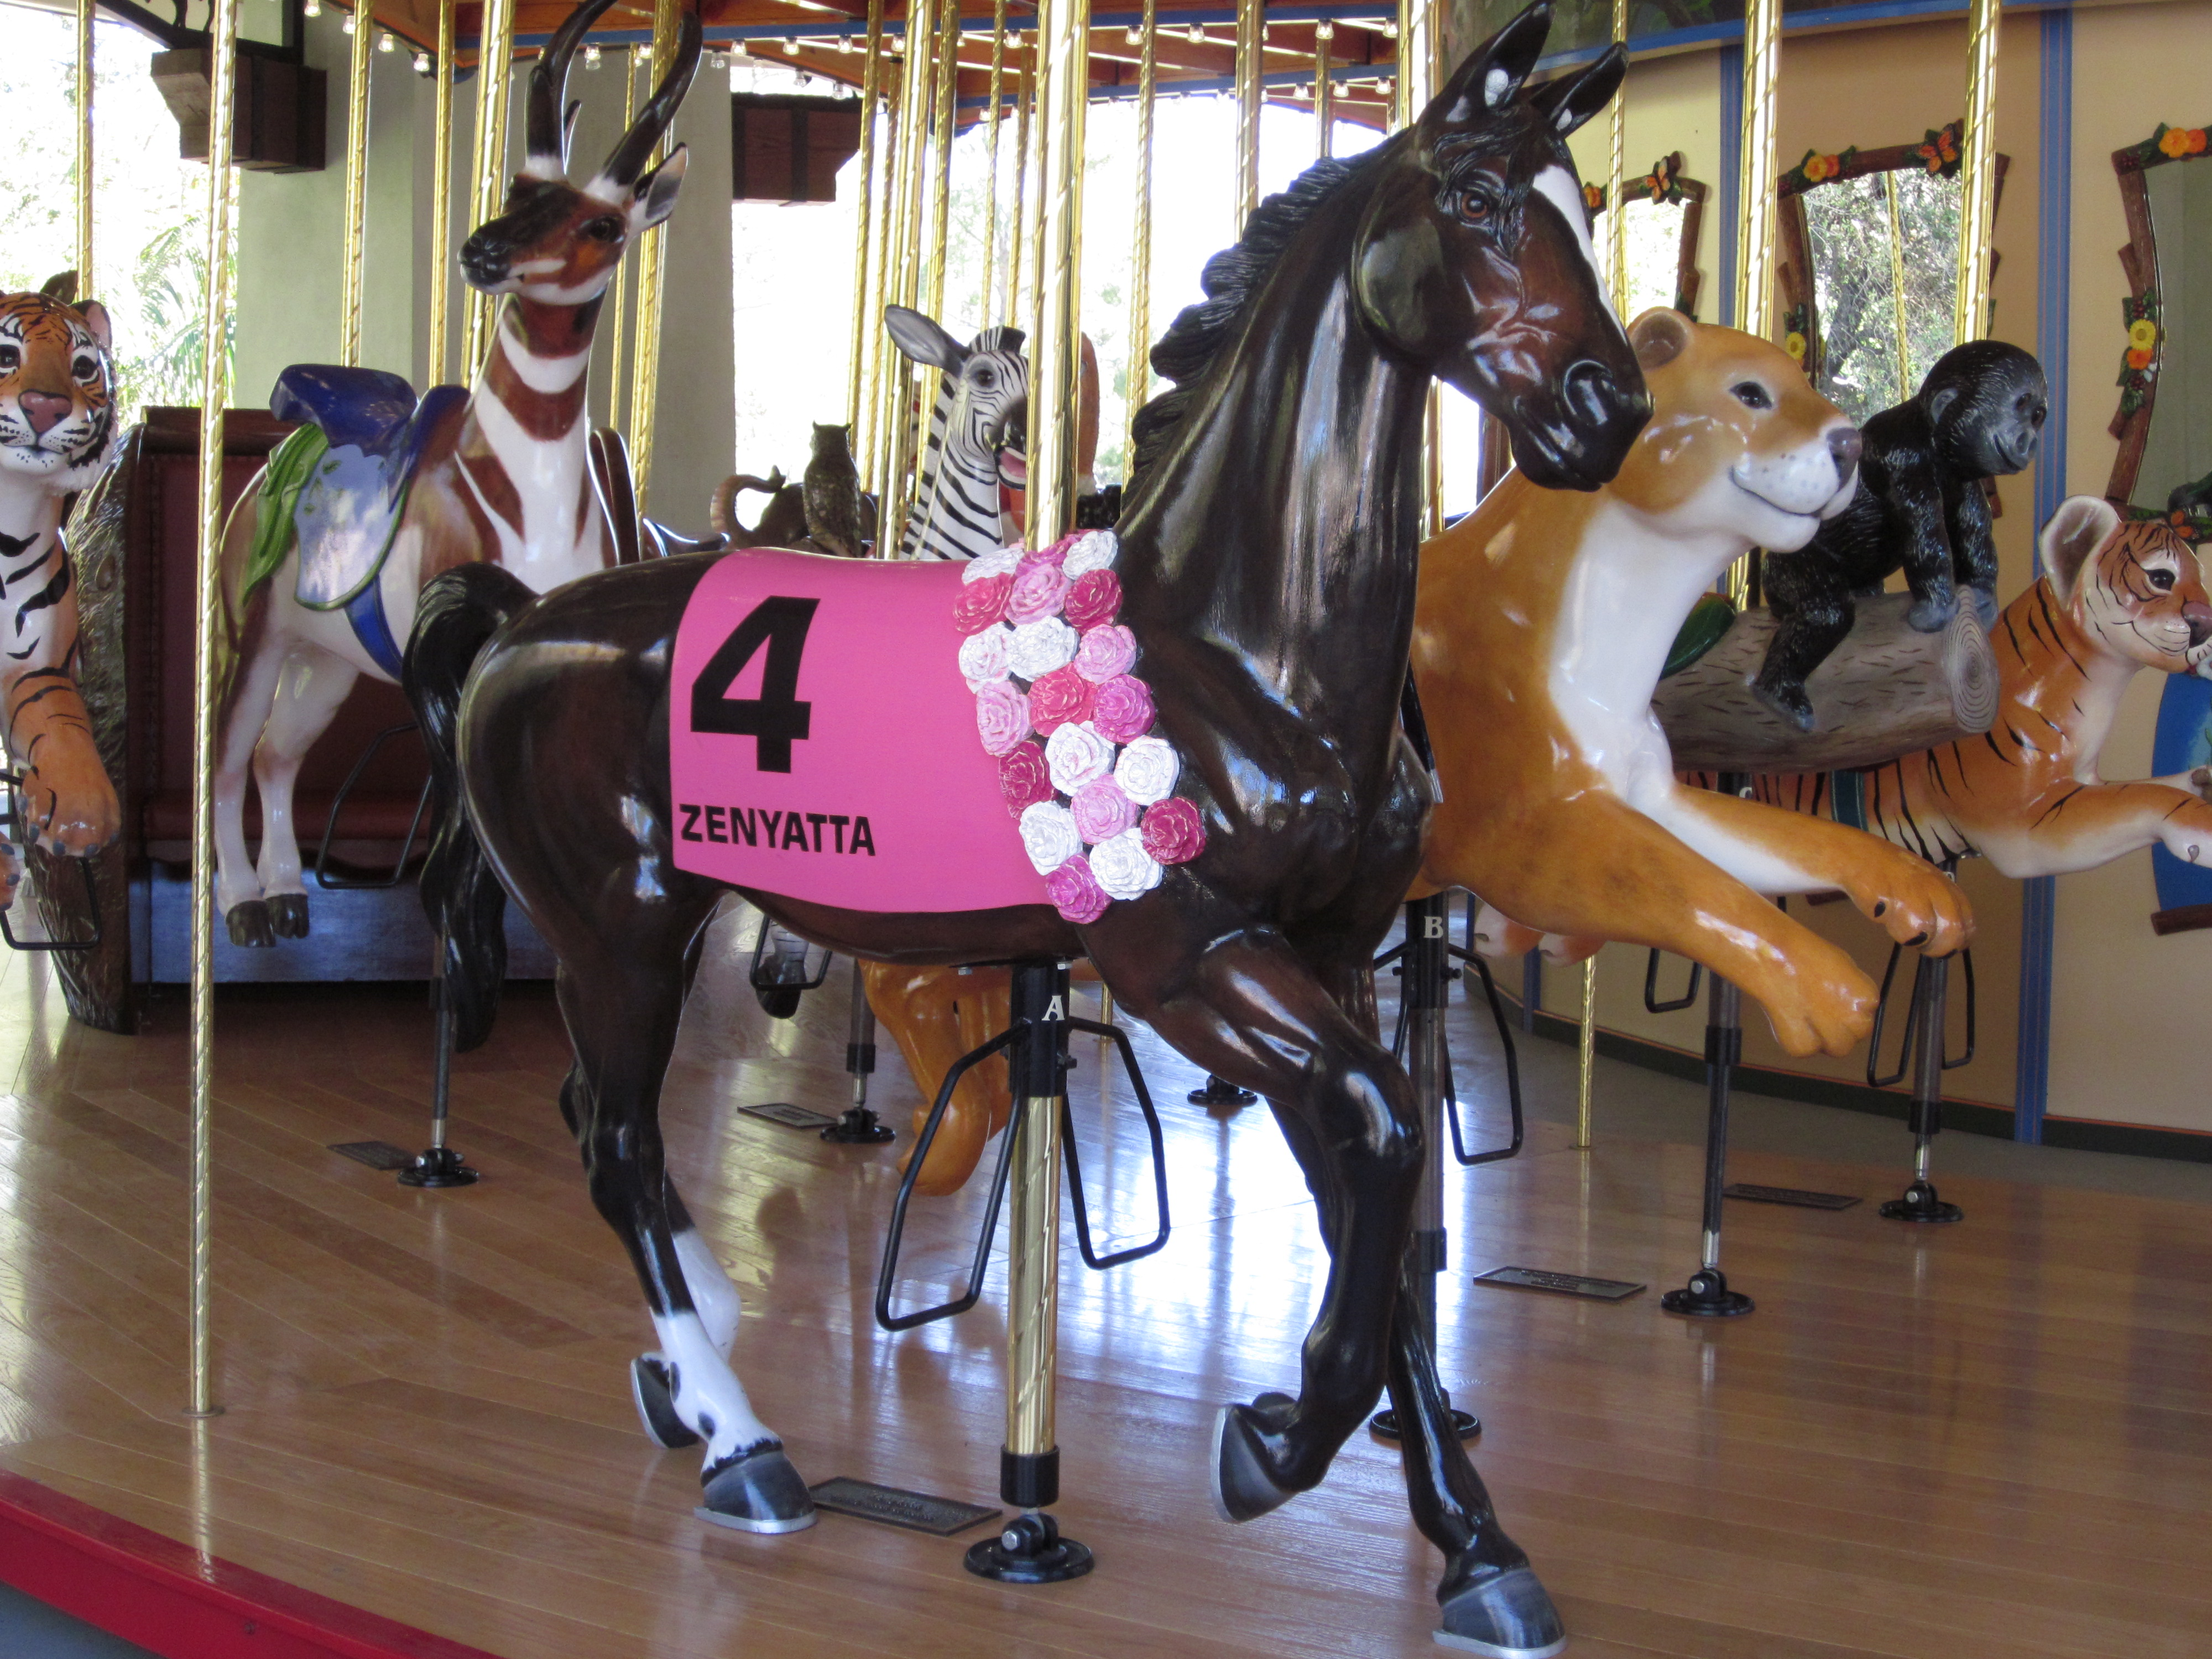 160 best carousel horses images on pinterest carousel horses ann and jerry moss owners of the real racehorse zenyatta donated money to build a new carousel at the la zoo and included carousel horse portraits of 3 geotapseo Images